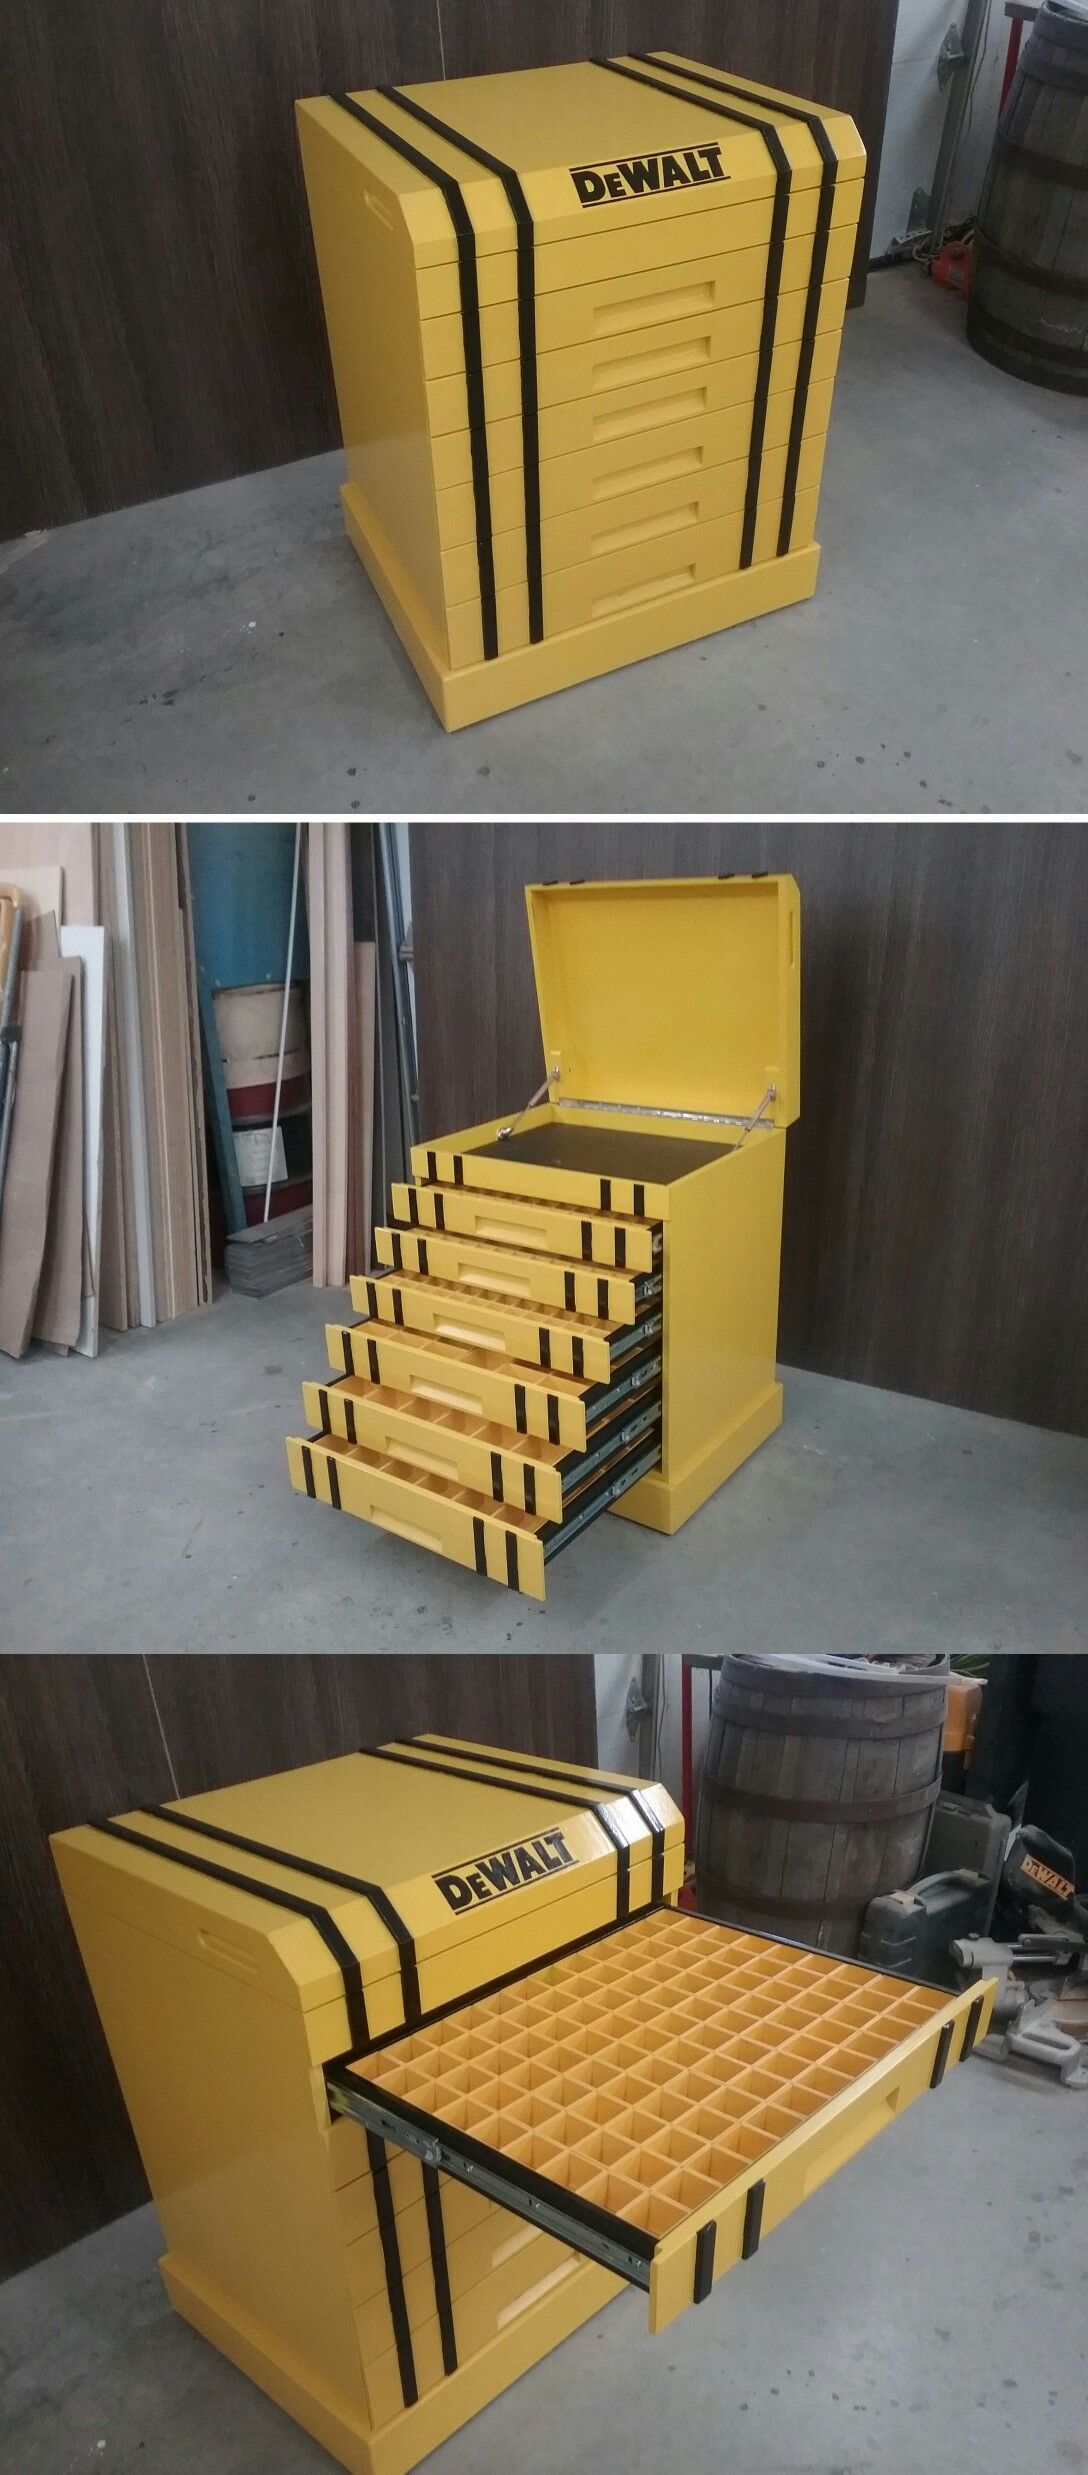 Garage Storage Boxes Dewalt Cabinet Storage Tools And Parts Storage Werkstatt